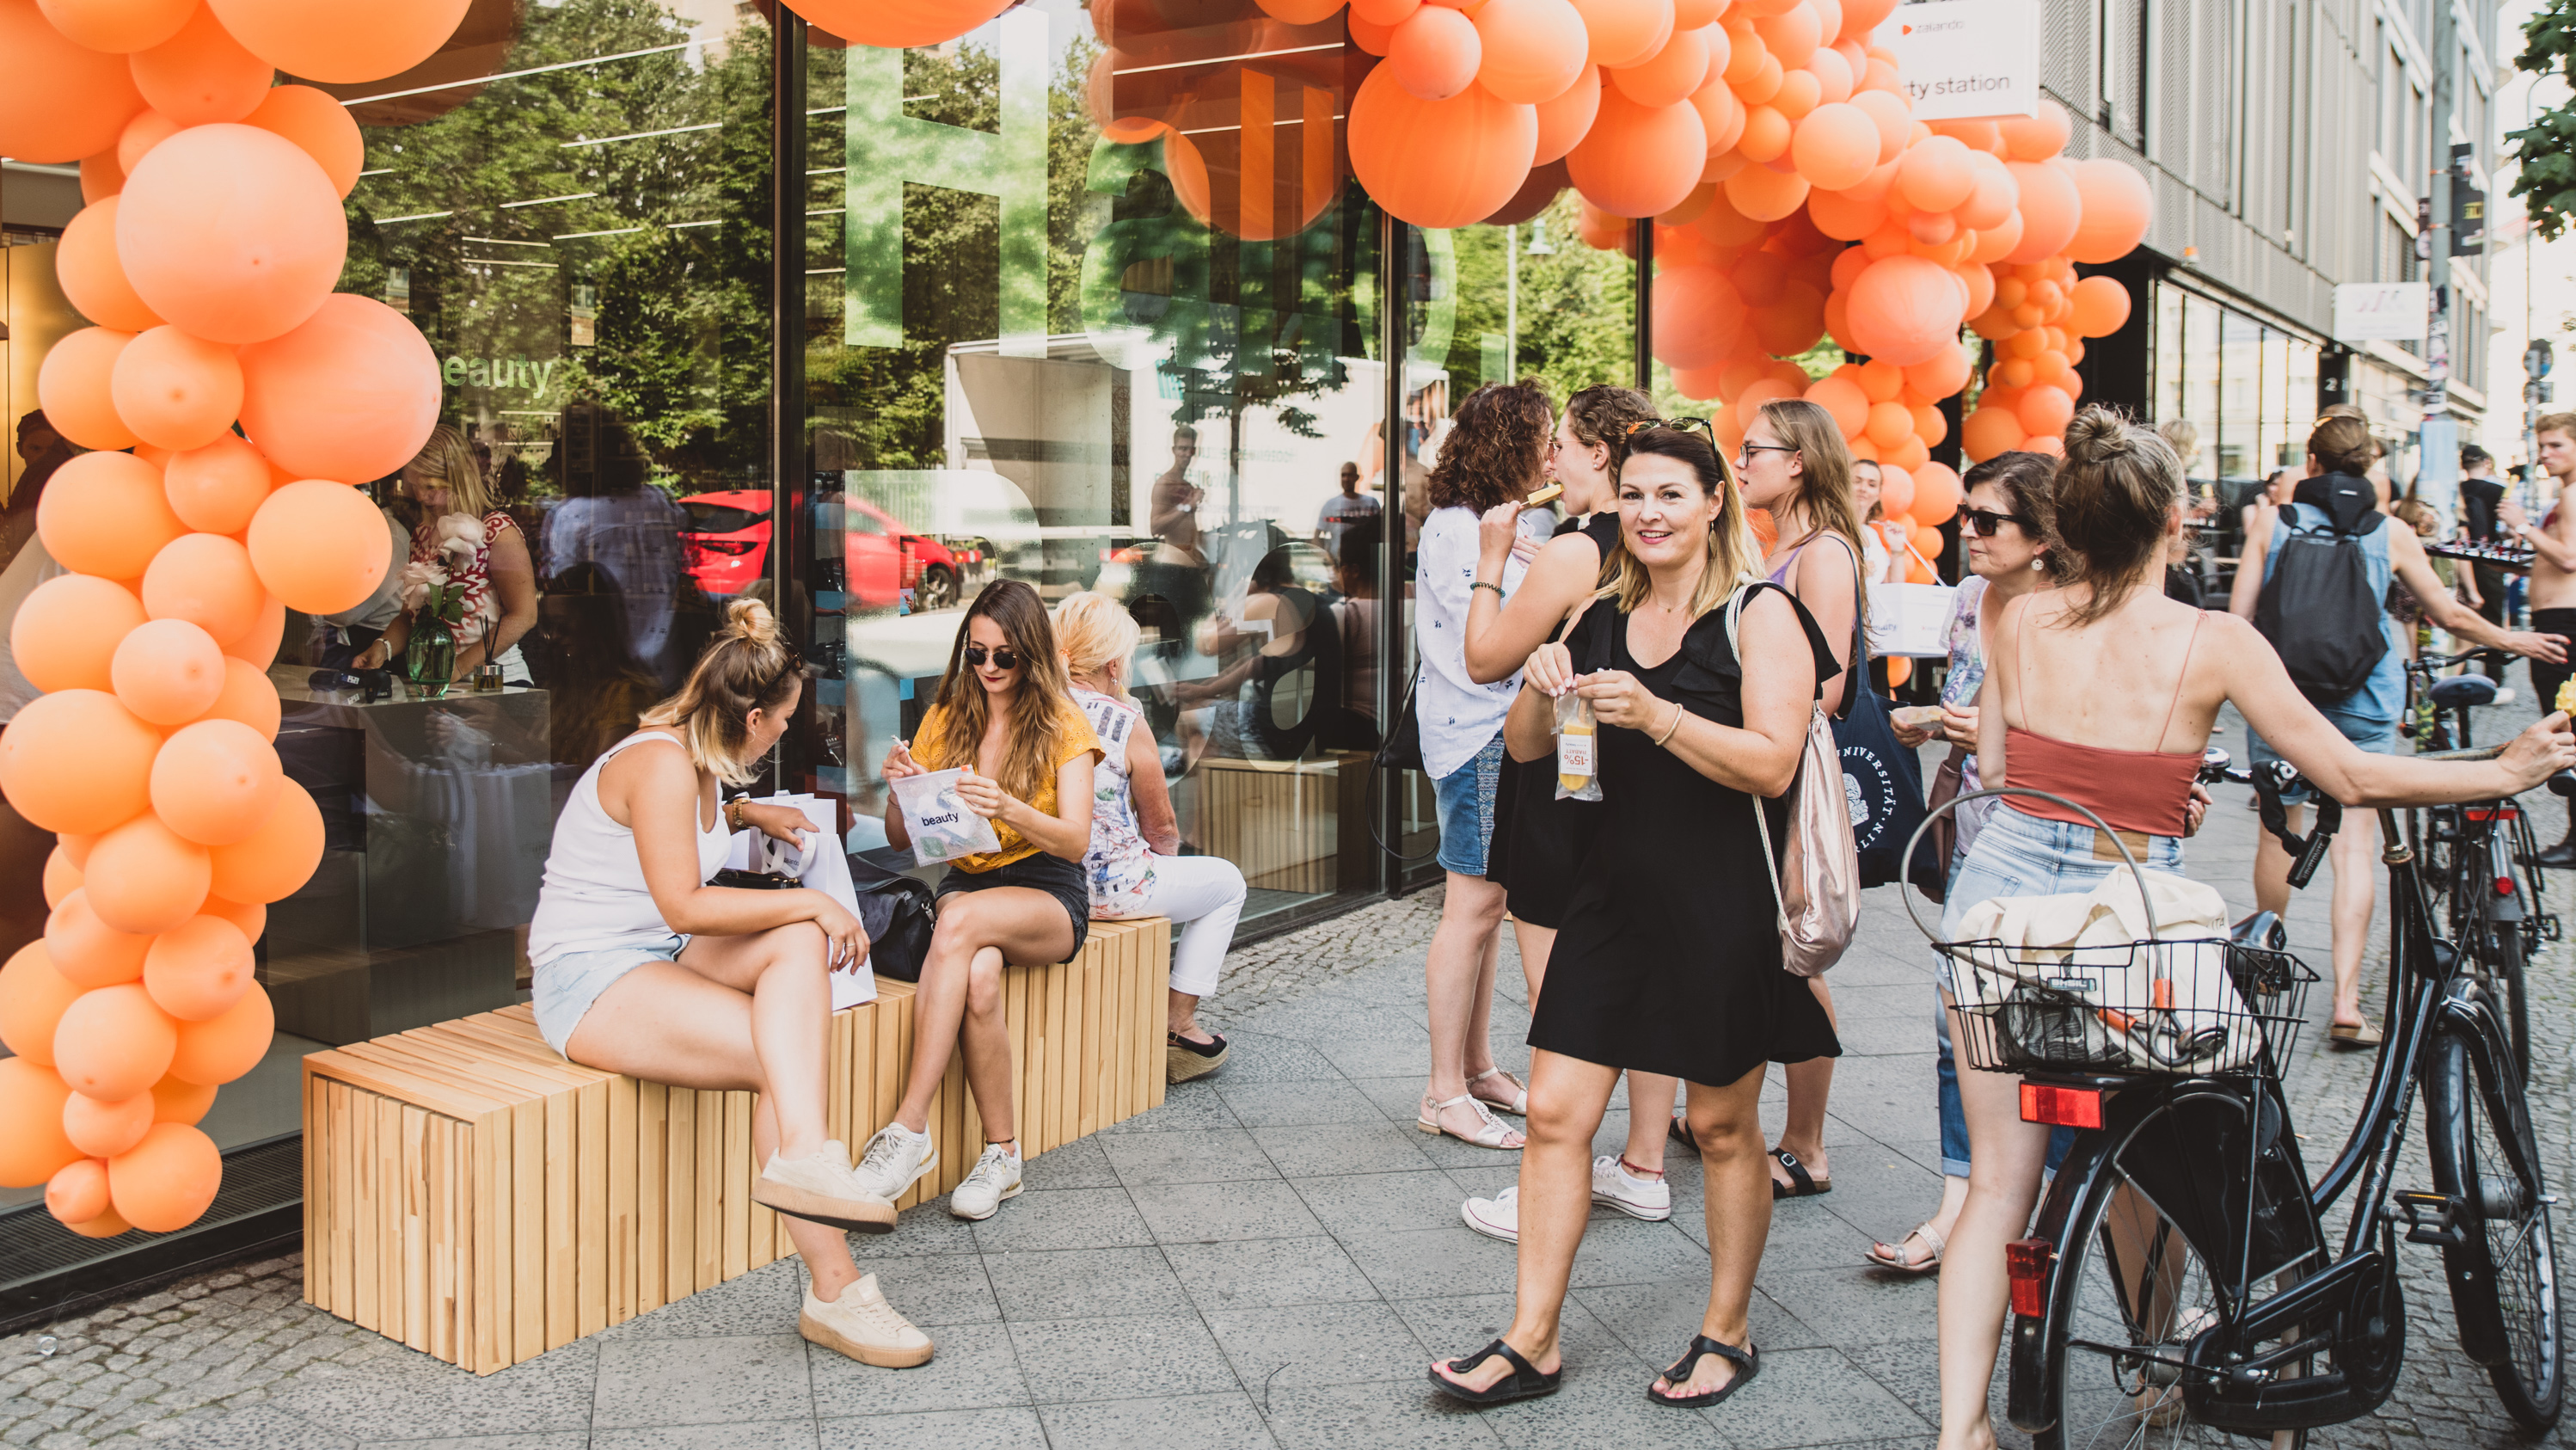 Zalando Beauty Station Opening